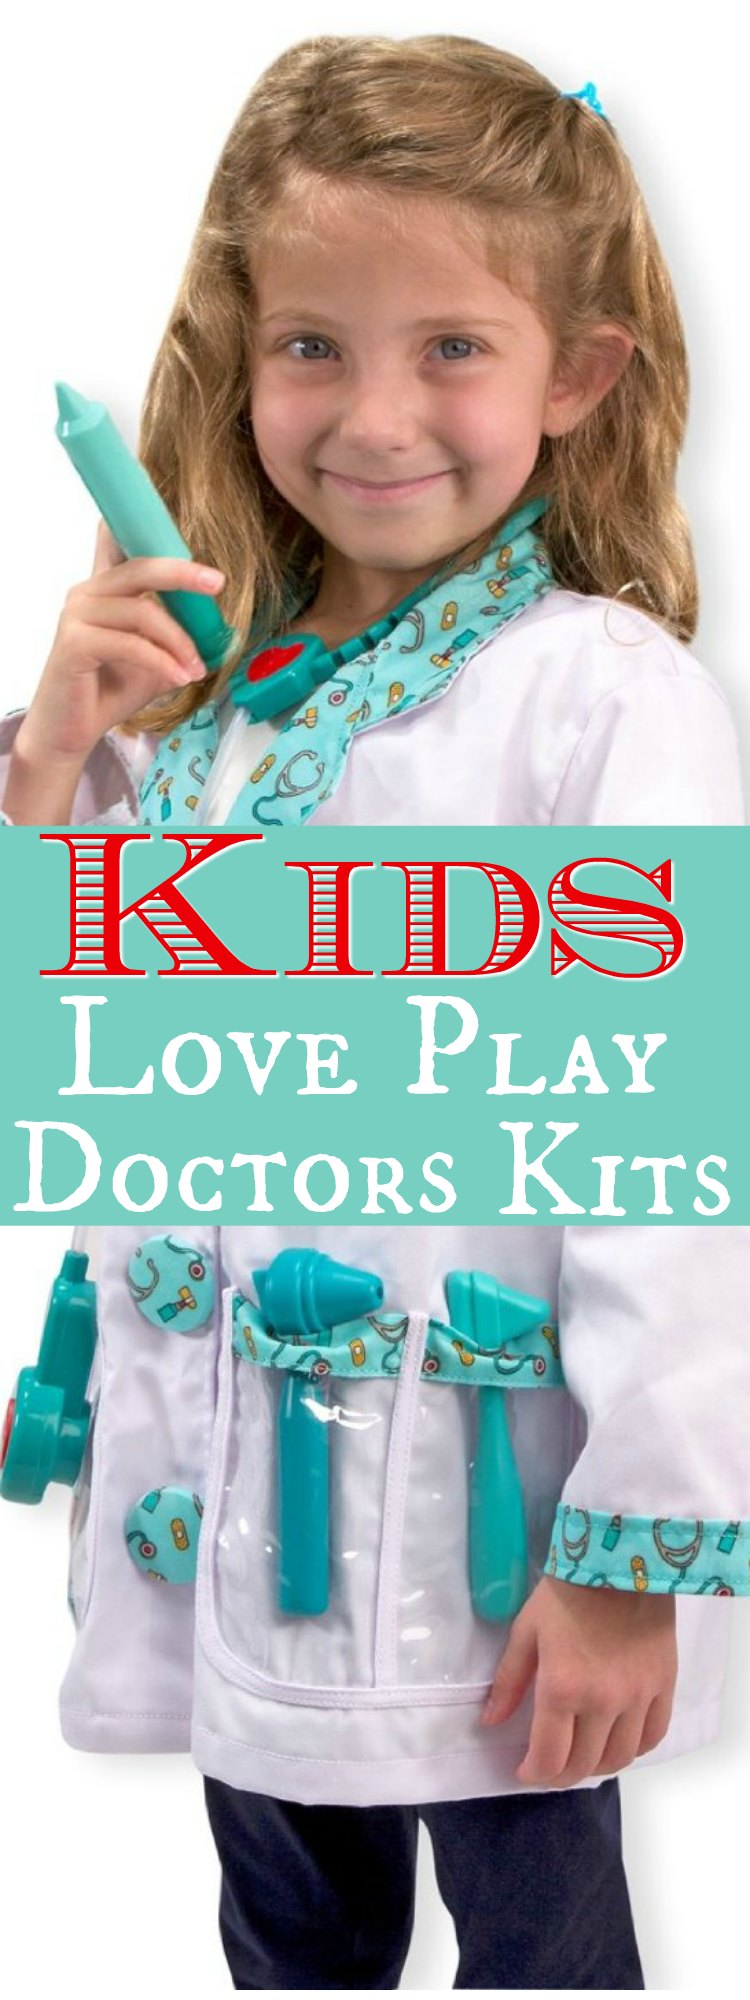 Kids Play Doctors Kits